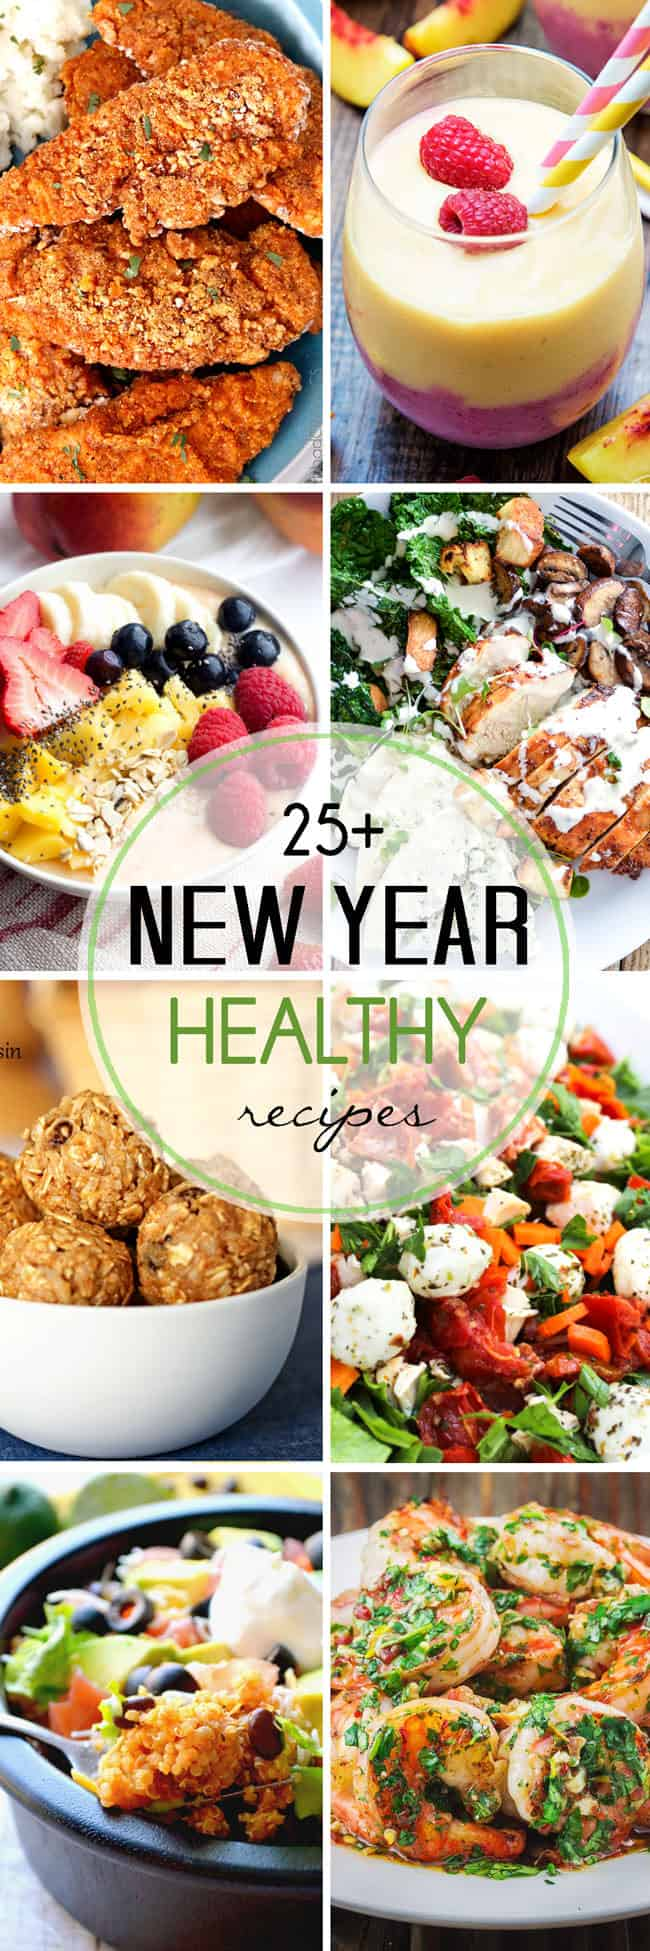 More than 25 Healthy Recipes for the New Year | The Mediterranean Dish. Top healthy recipe ideas from around the web! Don't give up things you like, we'll show you how to cook them differently. Check out this list of recipes today!